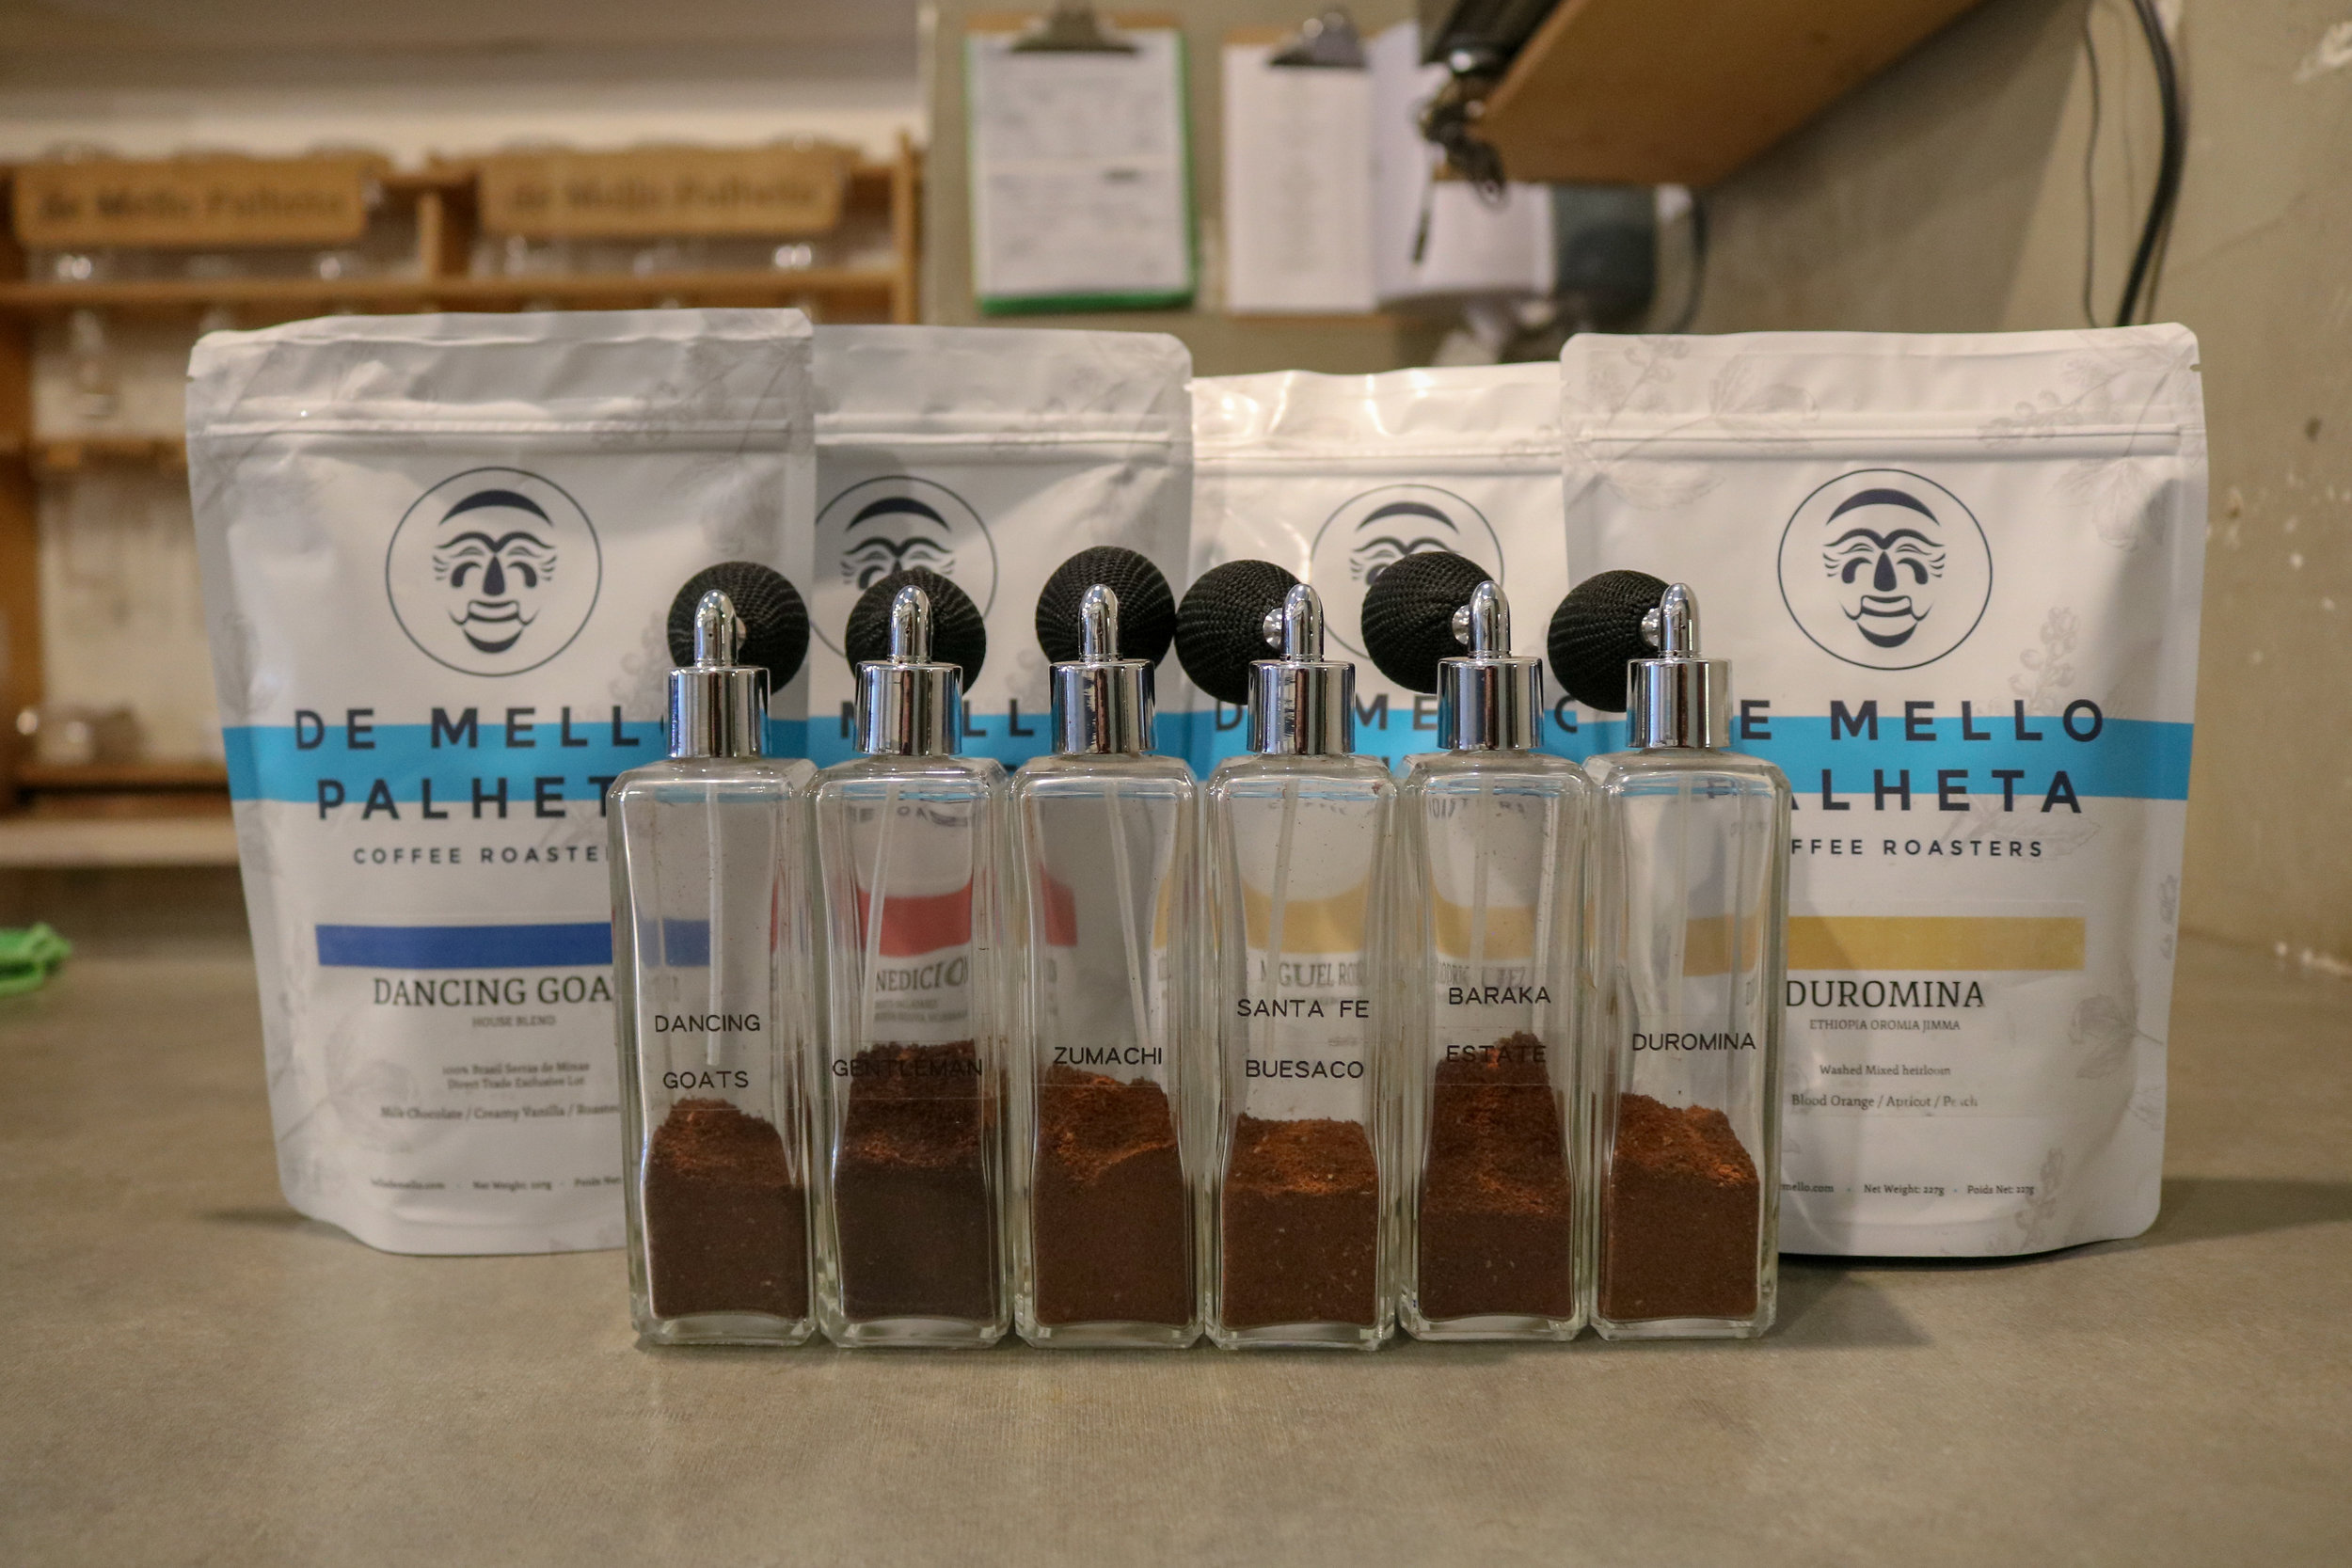 Coffee in perfume bottles and and de mello coffee bags